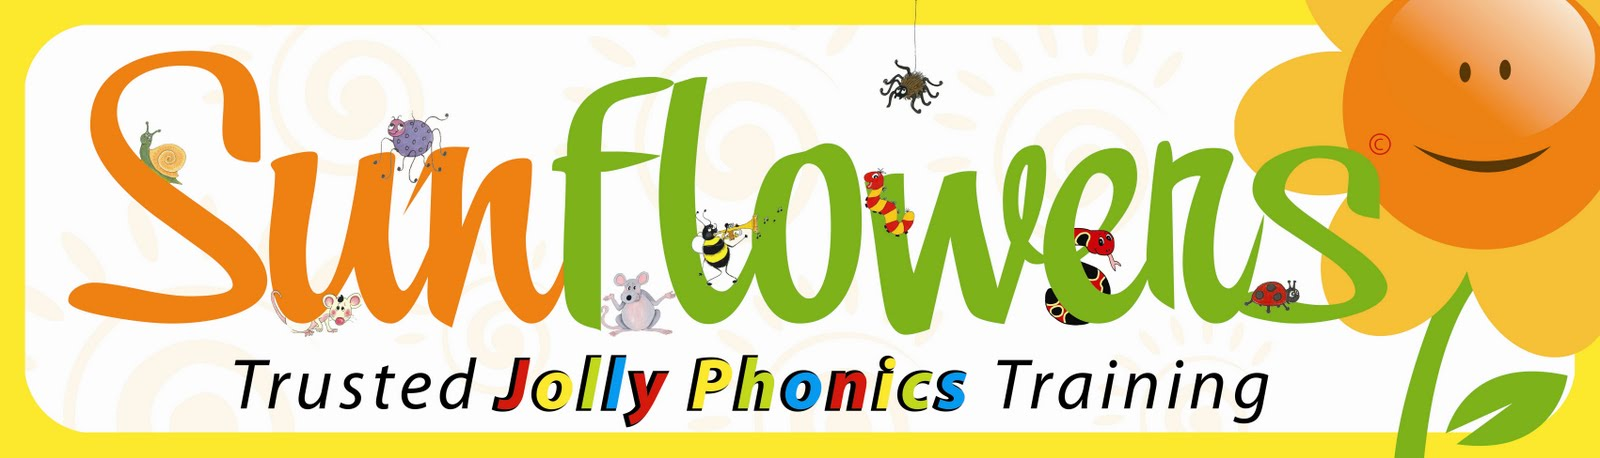 HK's Most Trusted JOLLY PHONICS Training for Children, Parents, Teachers and Schools